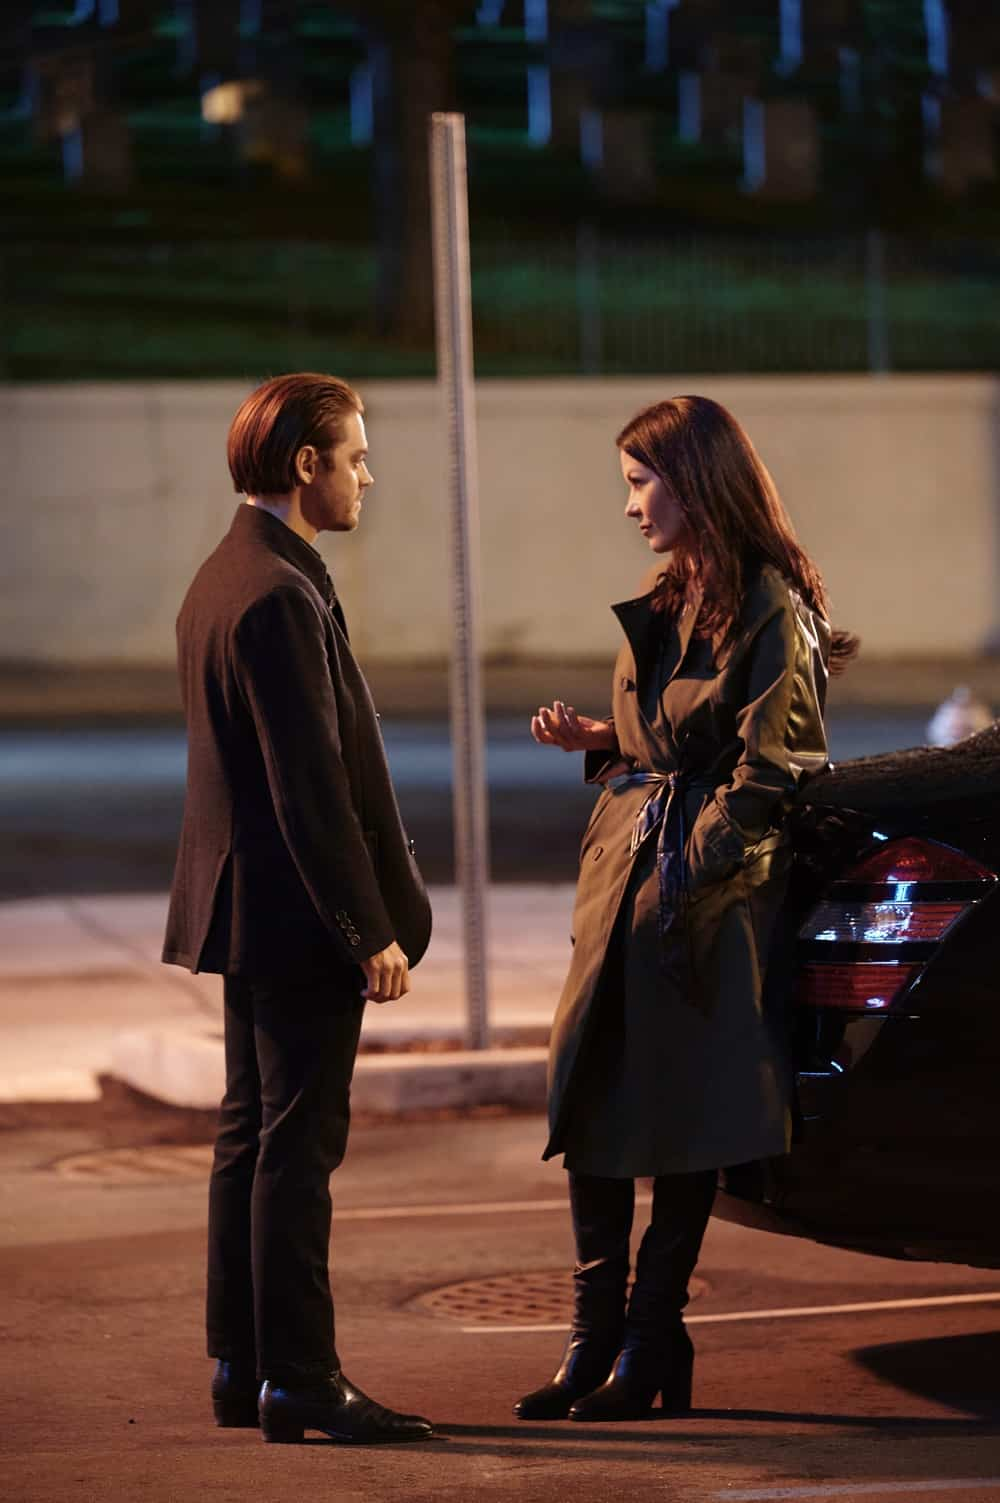 """PRODIGAL SON Season 2 Episode 12  L-R: Tom Payne and special guest star Catherine Zeta-Jones in the """"Sun & Fun"""" episode of PRODIGAL SON airing Tuesday, May 11 (9:01-10:00 PM ET/PT) on FOX. ©2021 Fox Media LLC Cr: Phil Caruso/FOX"""